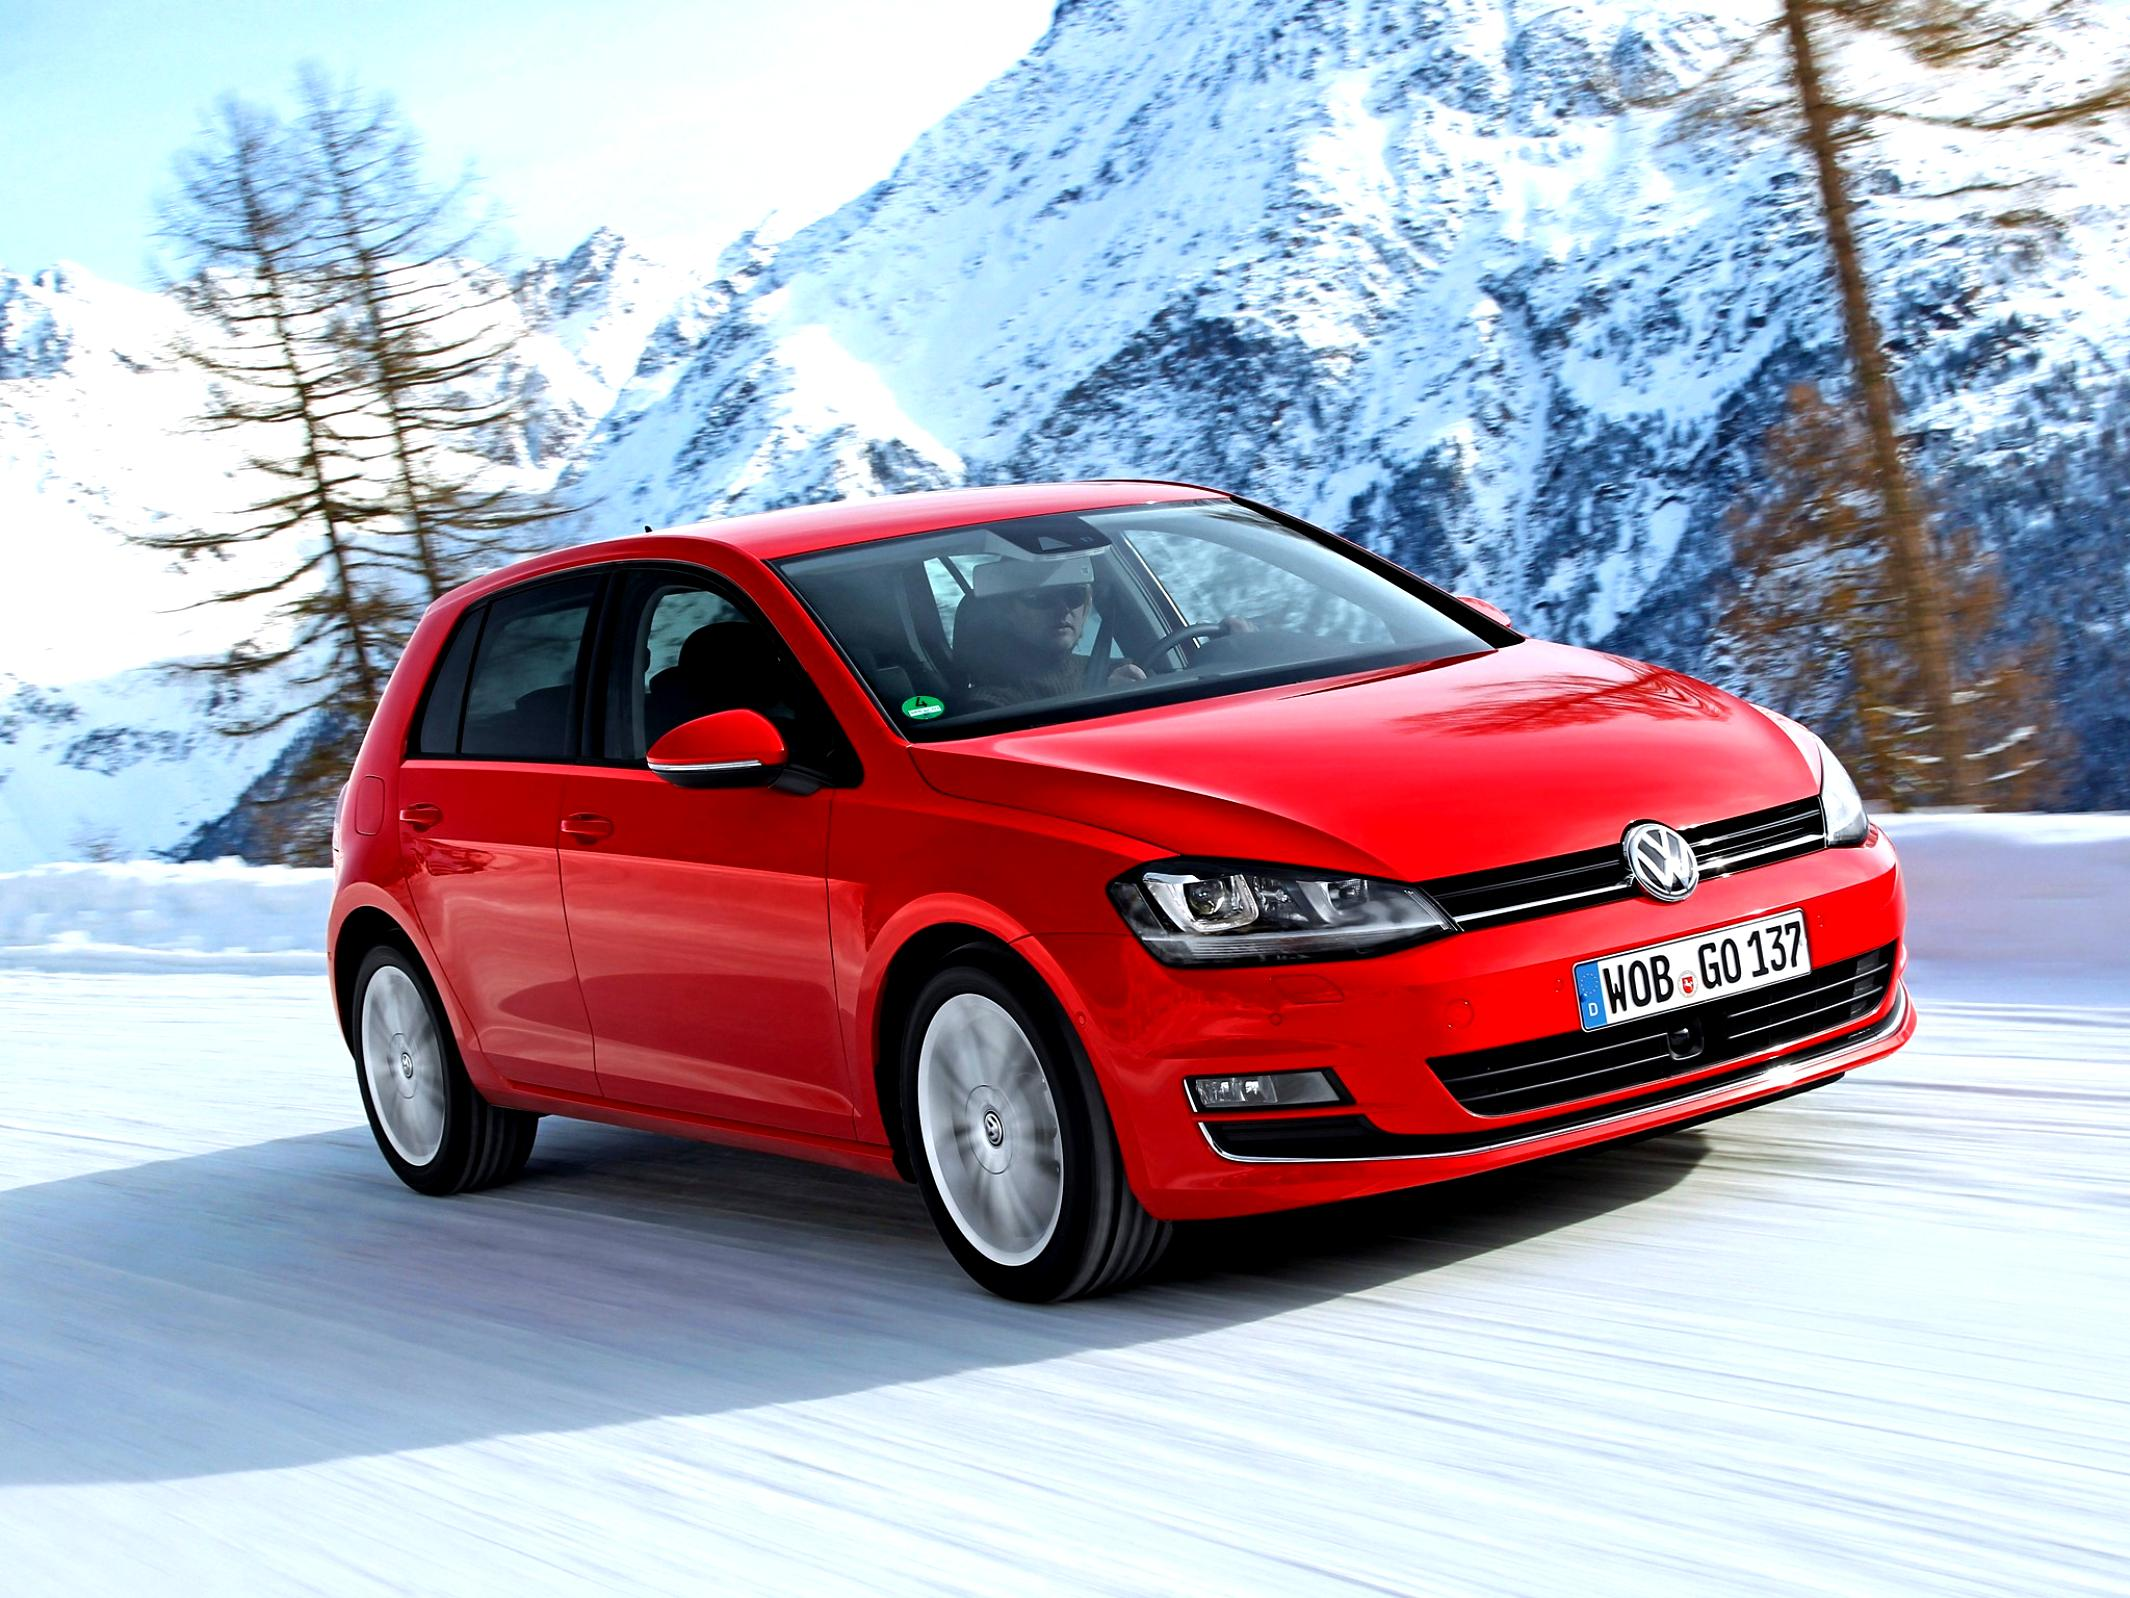 Volkswagen Golf VII 5 Doors 2012 #31